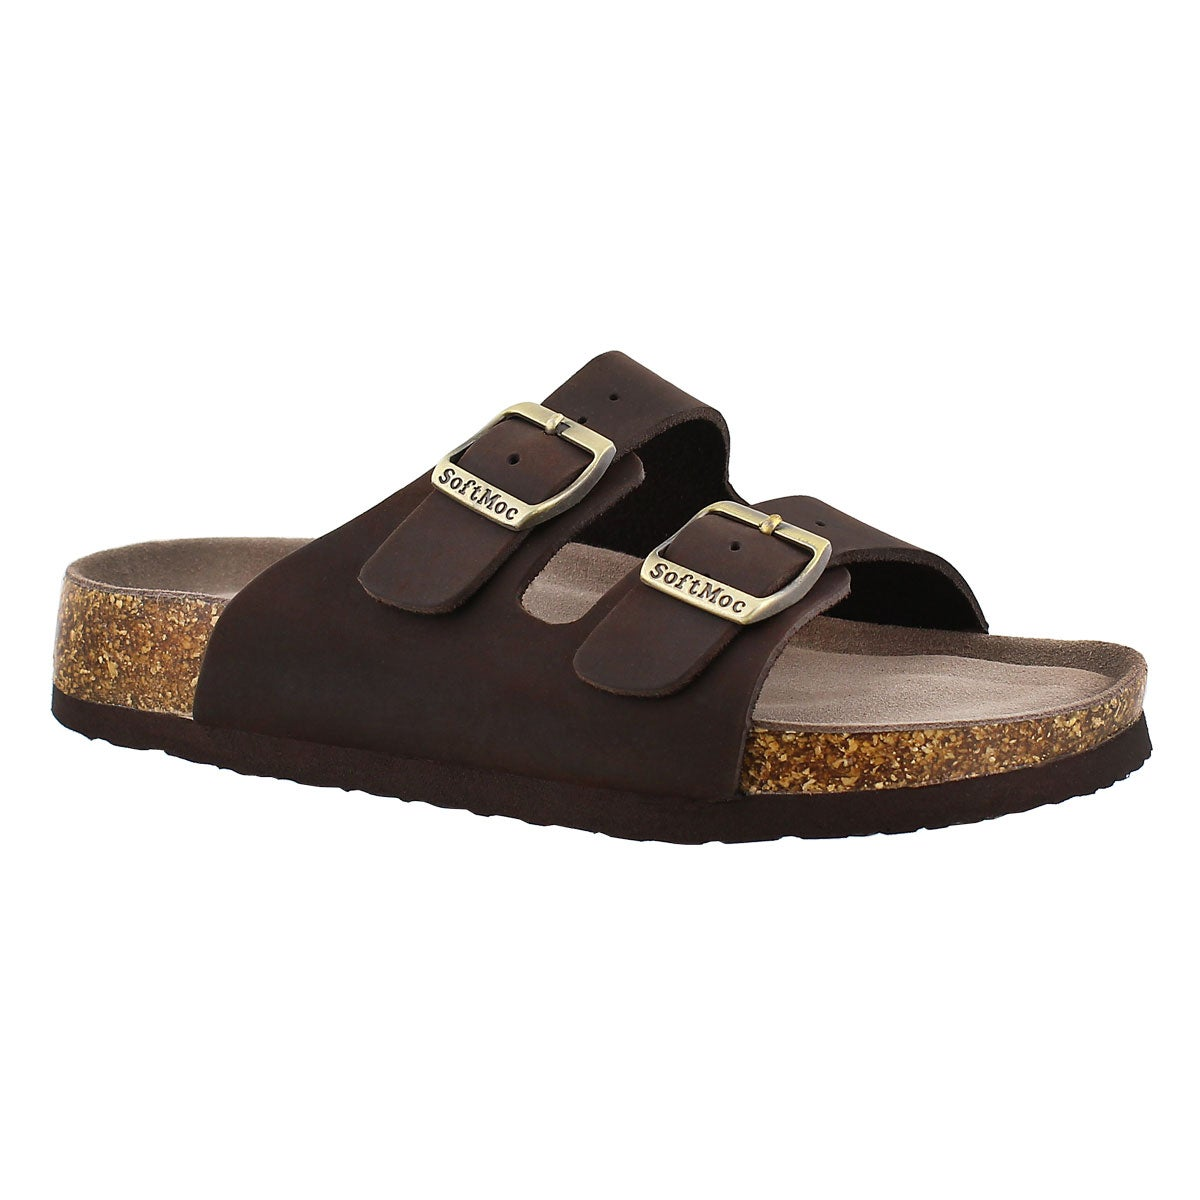 Women's ANNA 3 brown memory foam footbed sandals